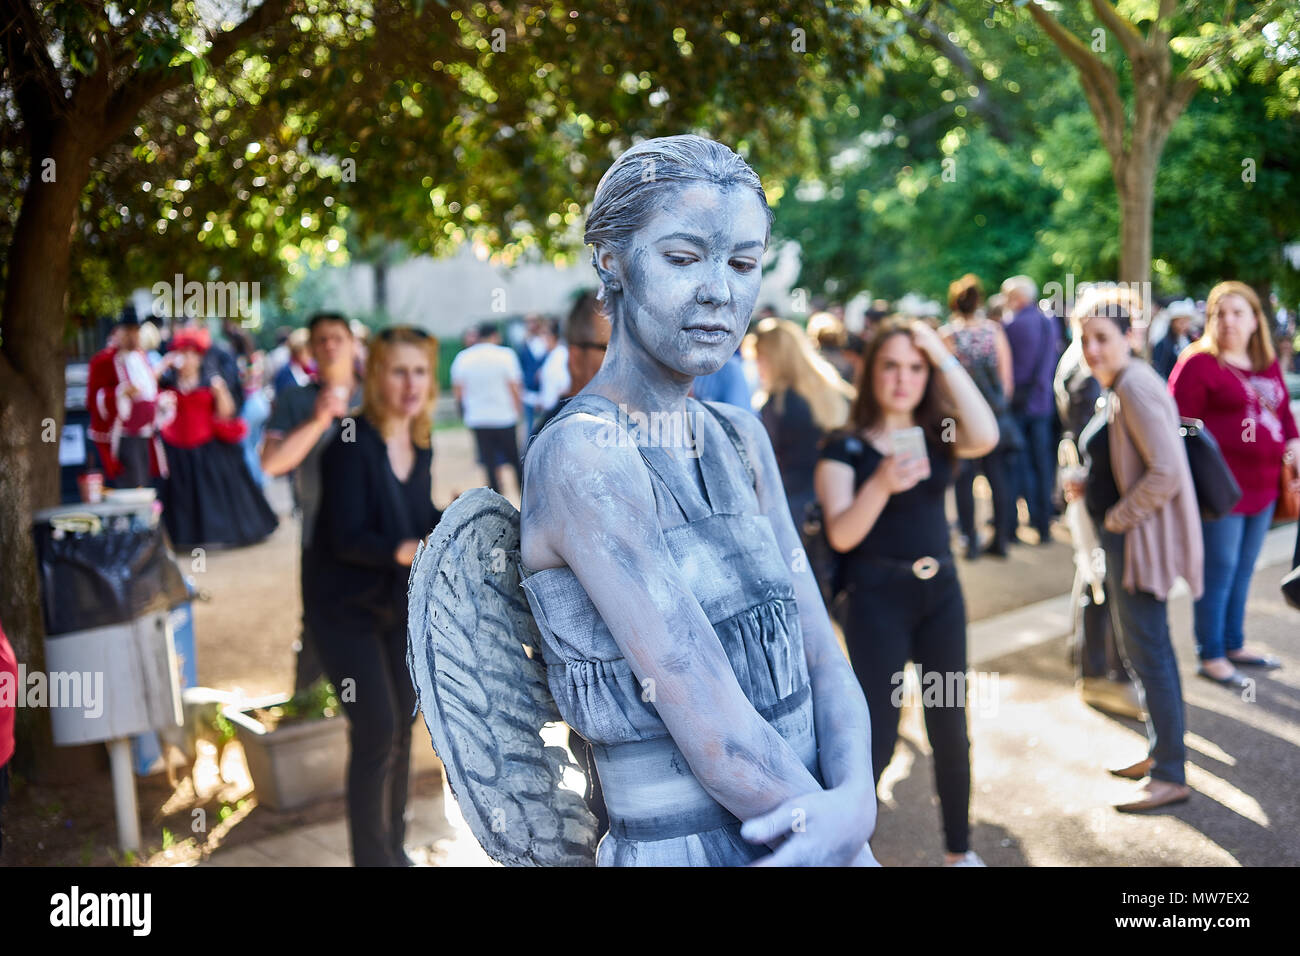 portrait of a cosplayer performing as a statue - Stock Image